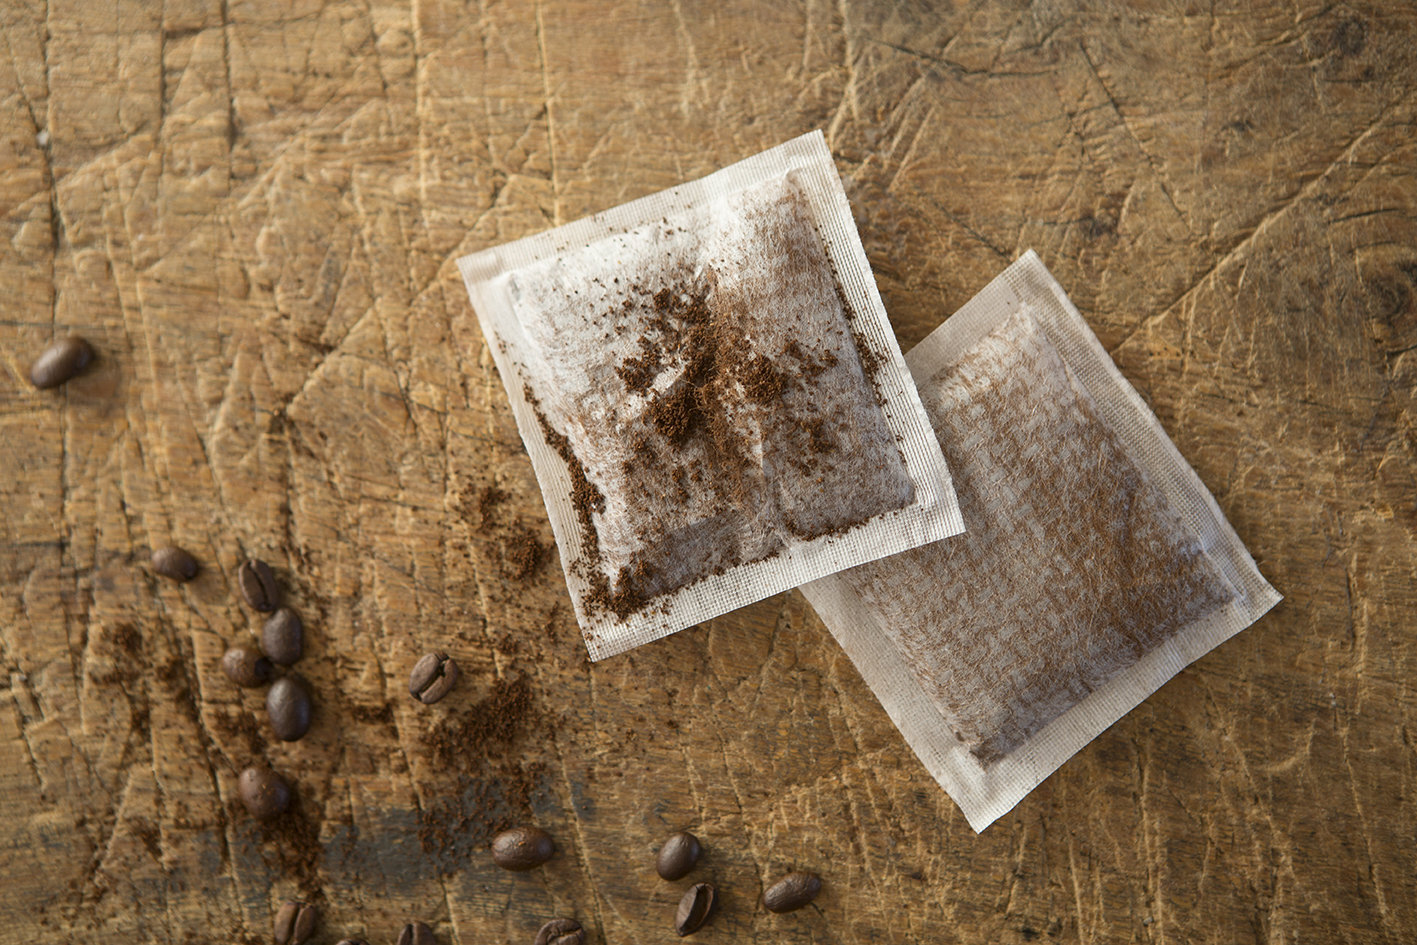 Coffee Bags filled with Fairtrade and Organic Ground Coffee